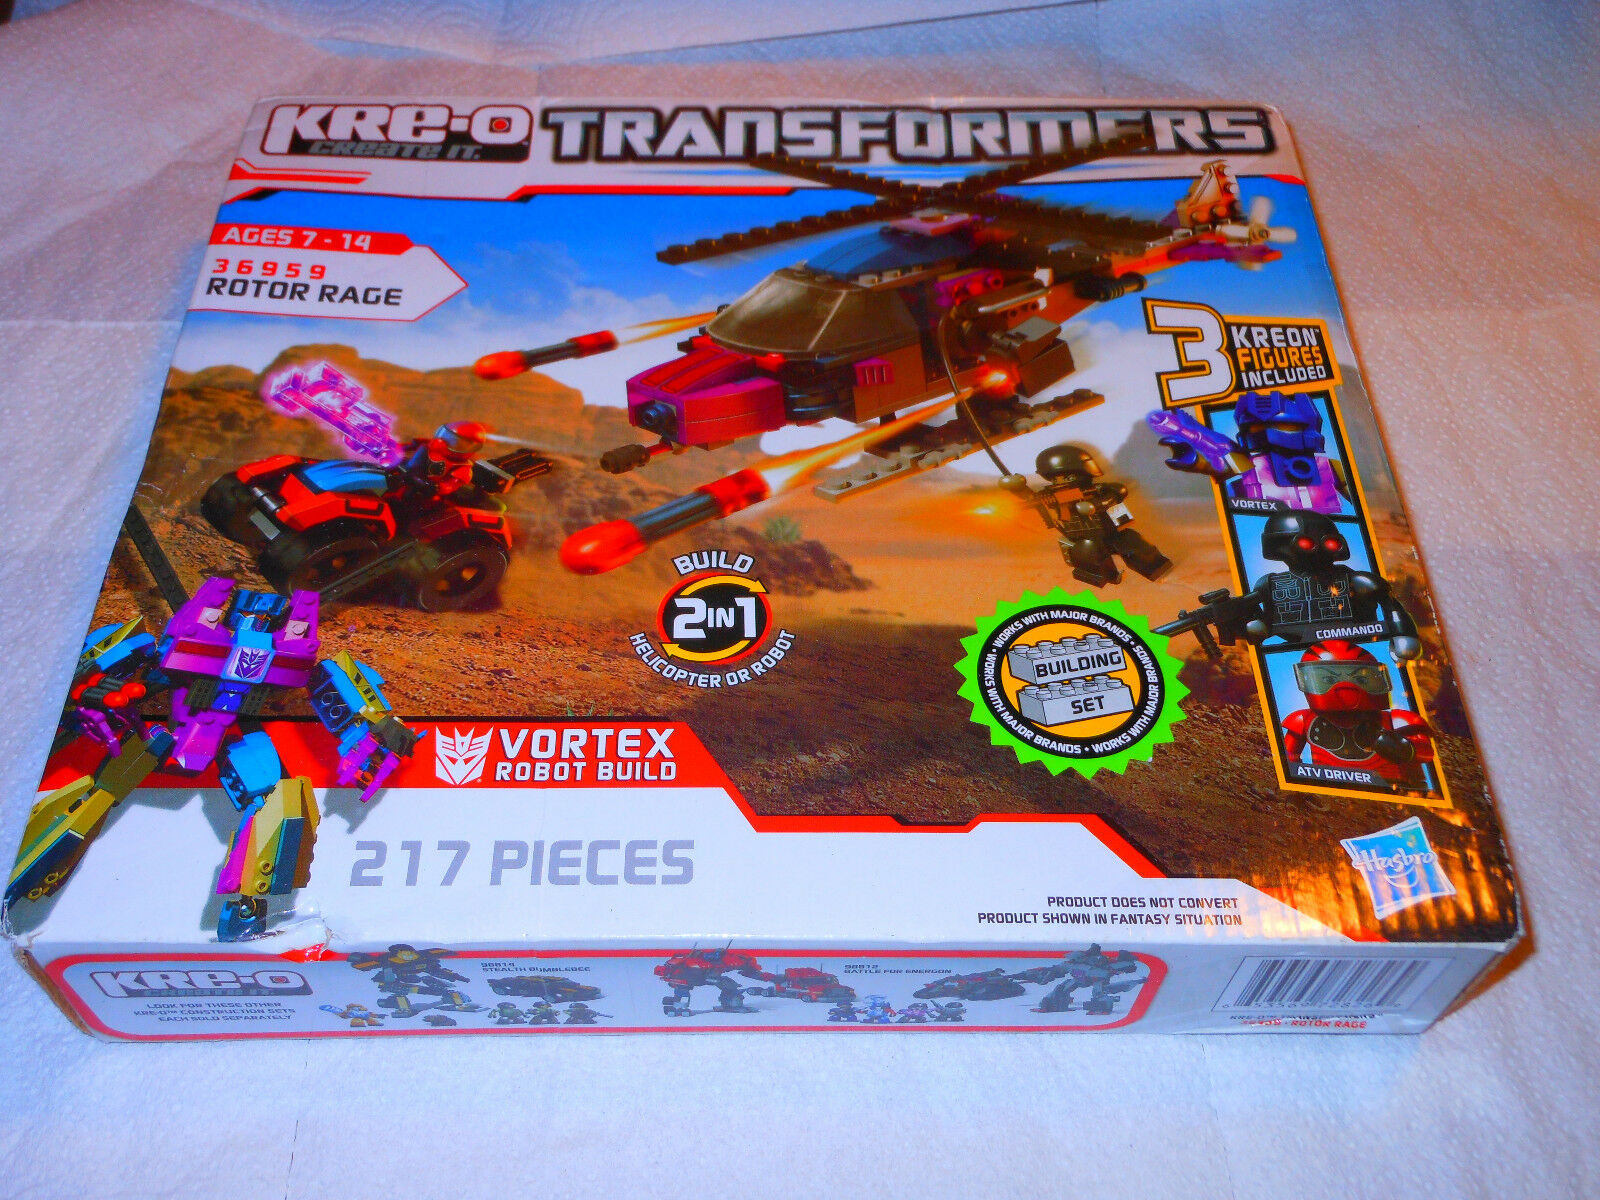 KRE-O 36959 Transformers redor Rage 217 Pieces Ages 7-14 NEW NEW NEW 8fafce